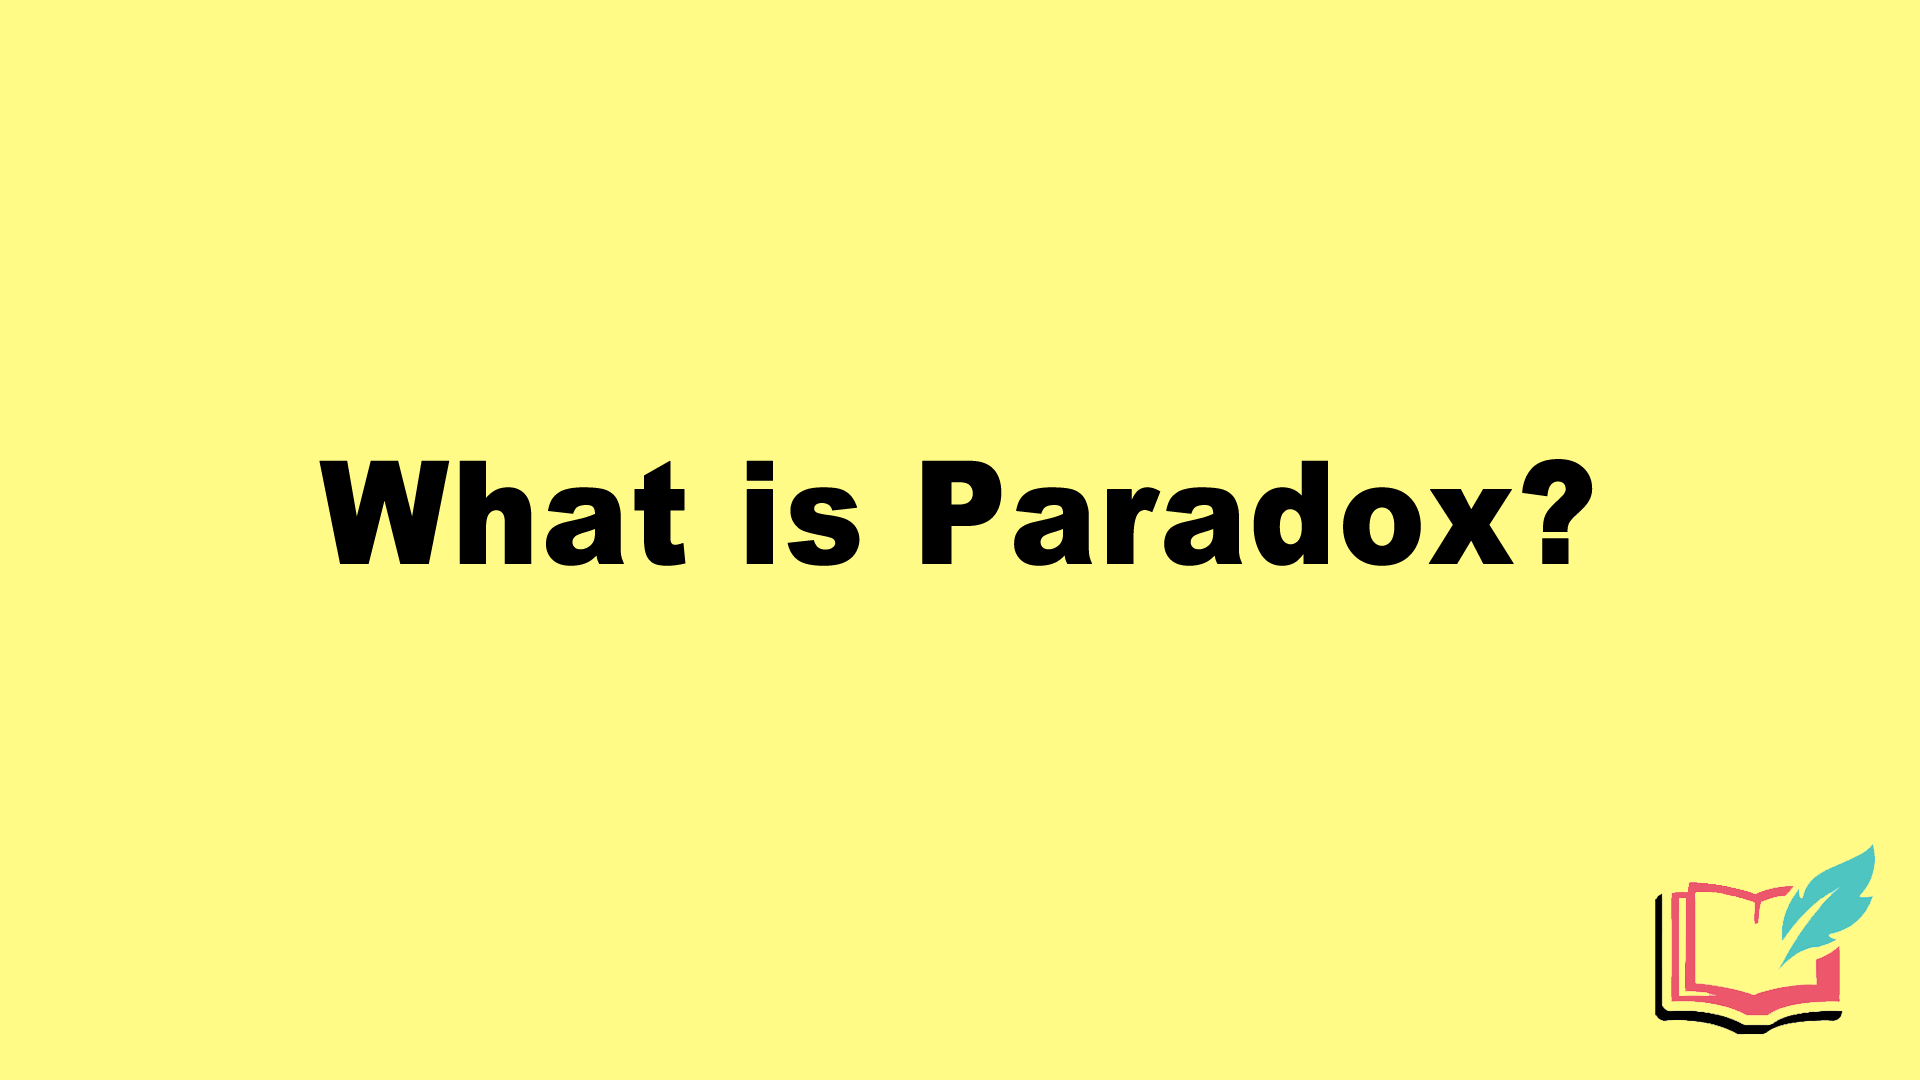 what is paradox literary term